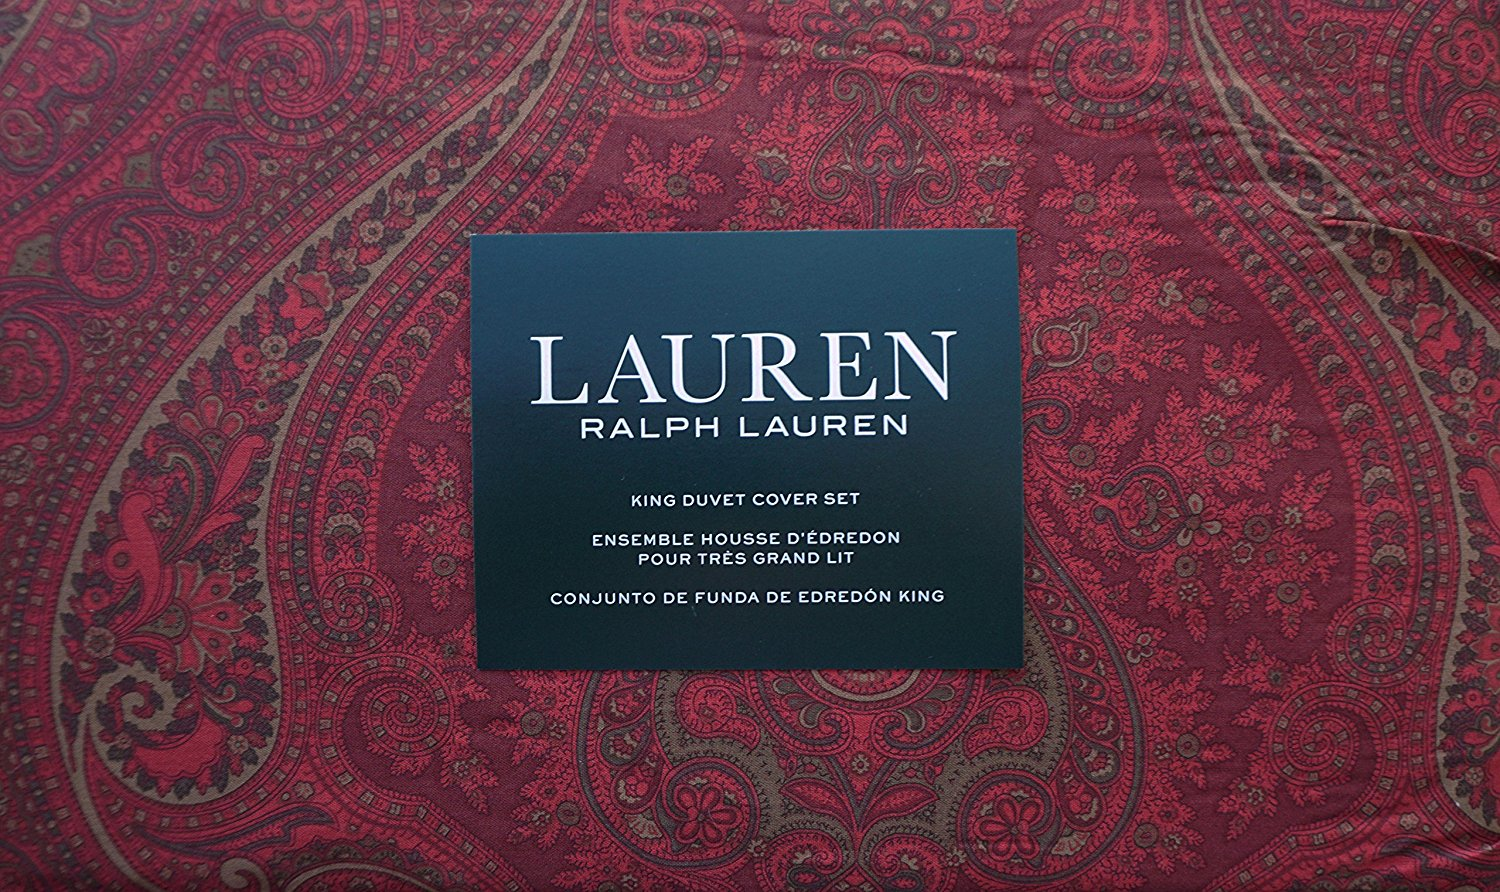 Lauren Ralph Lauren Bedding 3 Piece King Duvet Cover Set Paisley Pattern in Shades of Red and Light Brown